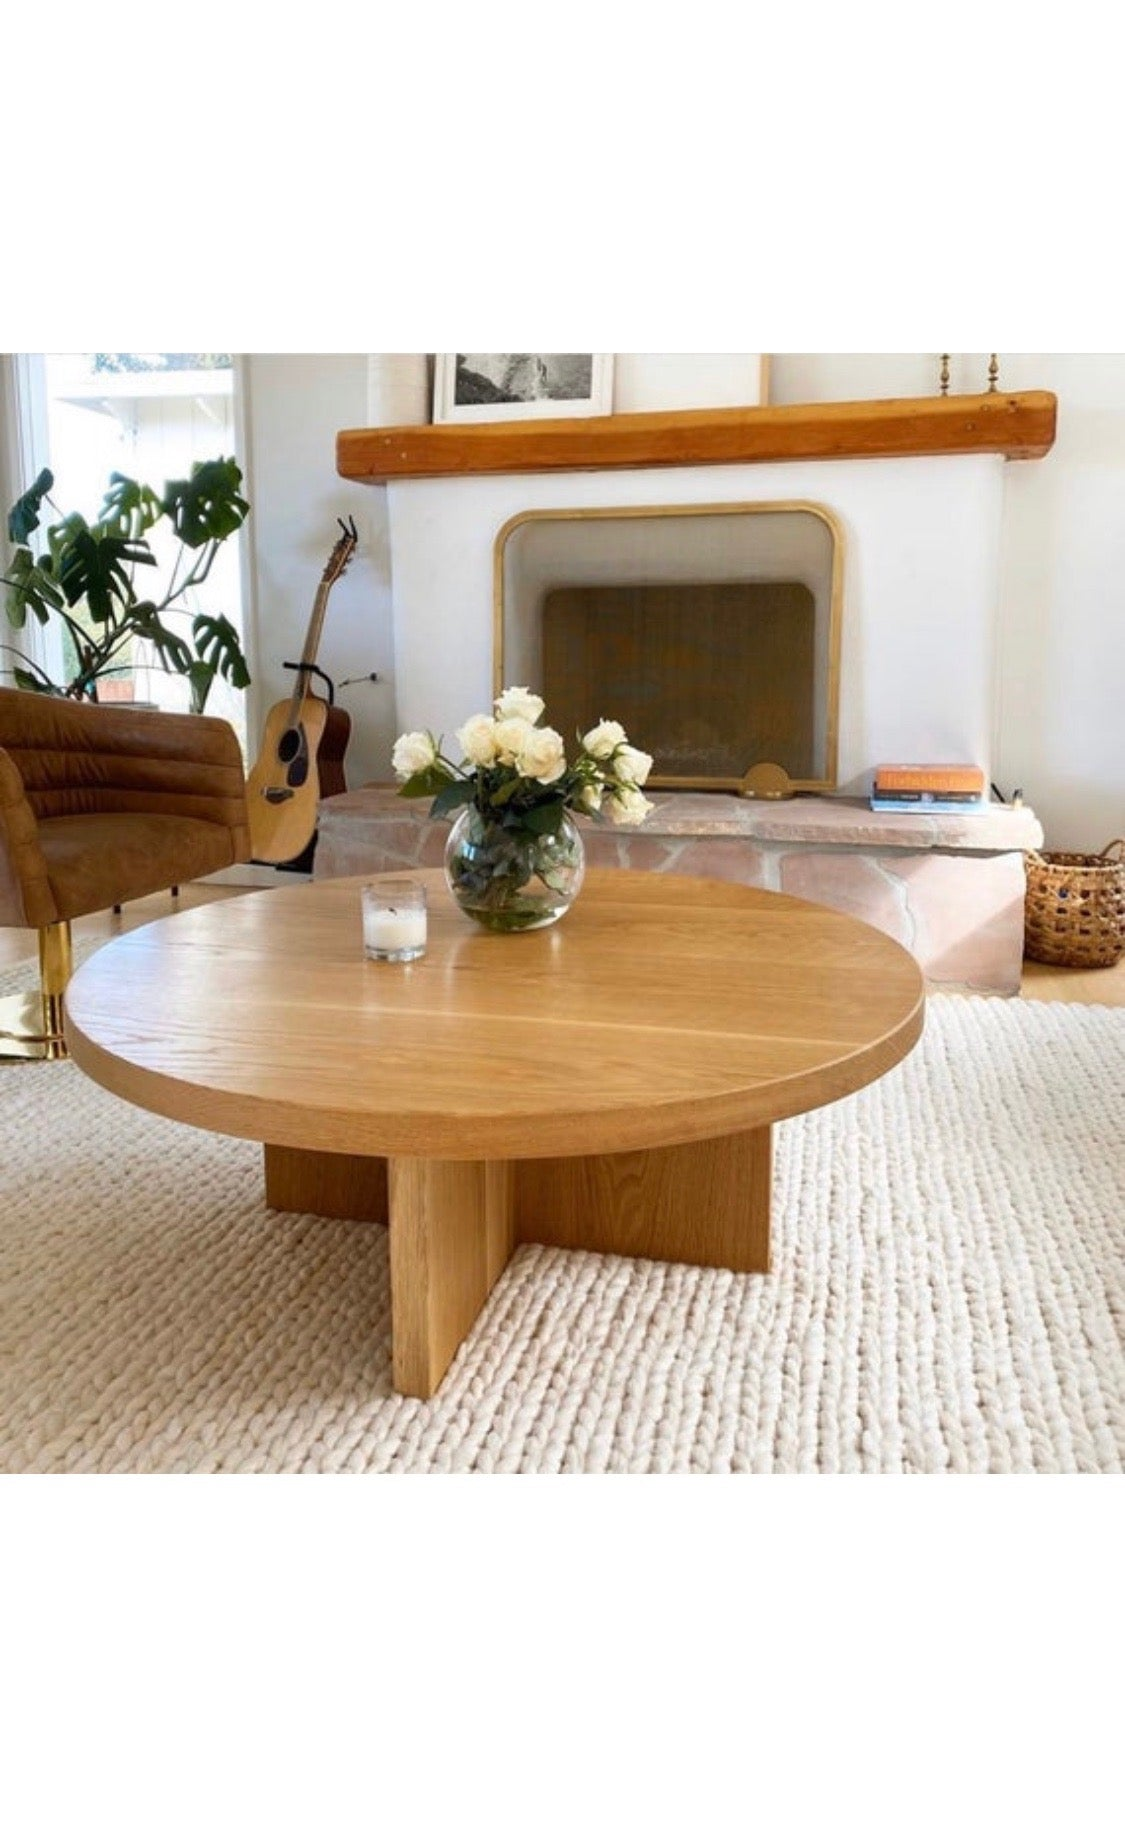 Round White Oak Coffee Table